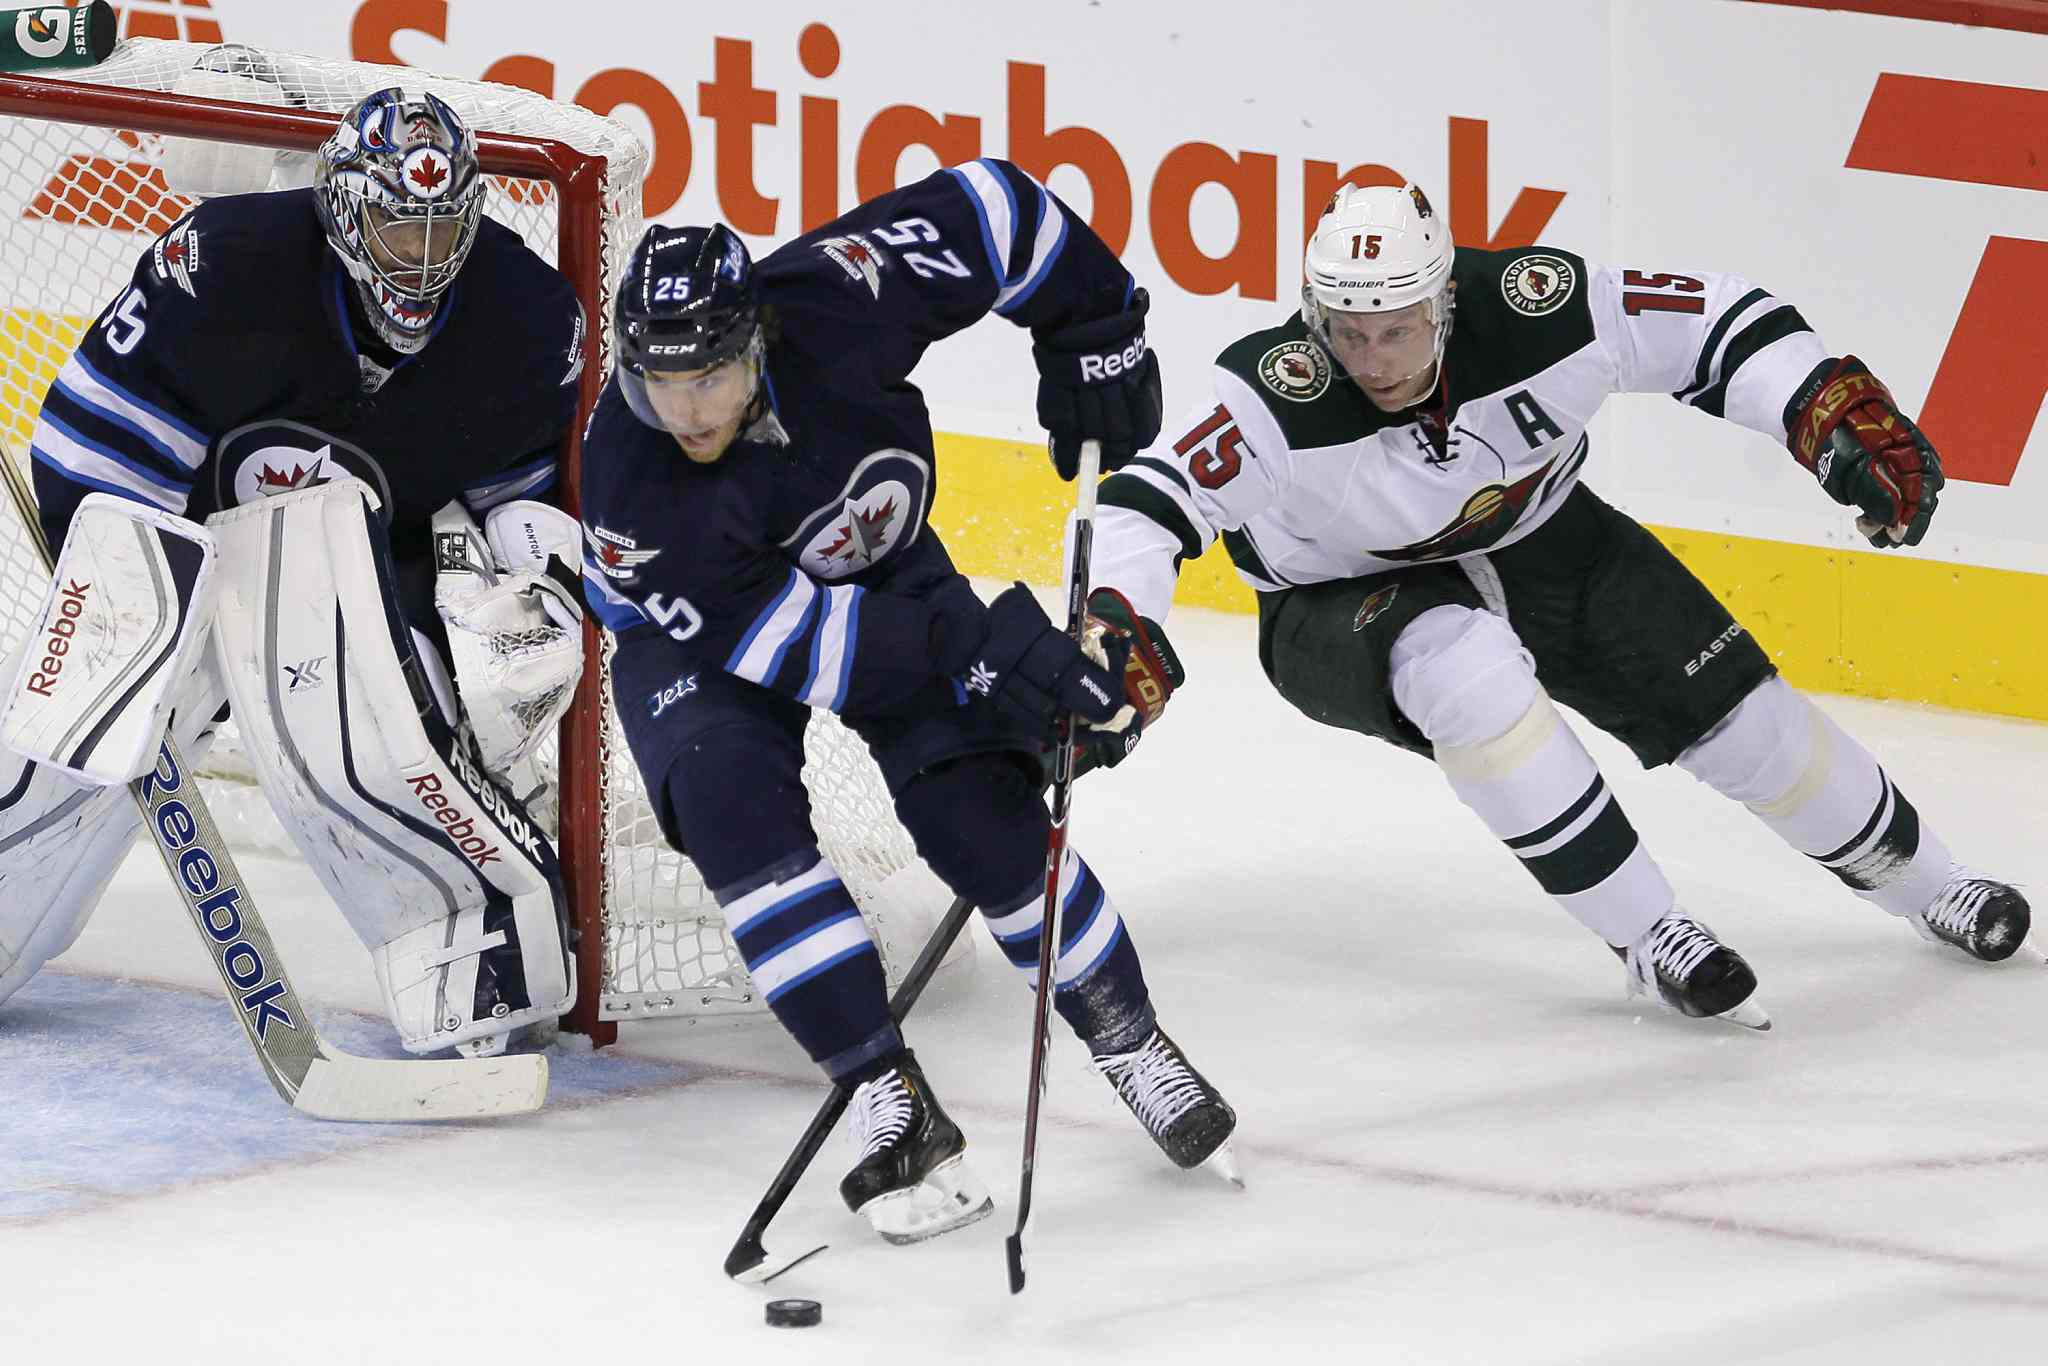 Dany Heatley (right) chases down Zach Redmond of the Winnipeg Jets as goaltender Al Montoya looks on during the first period.